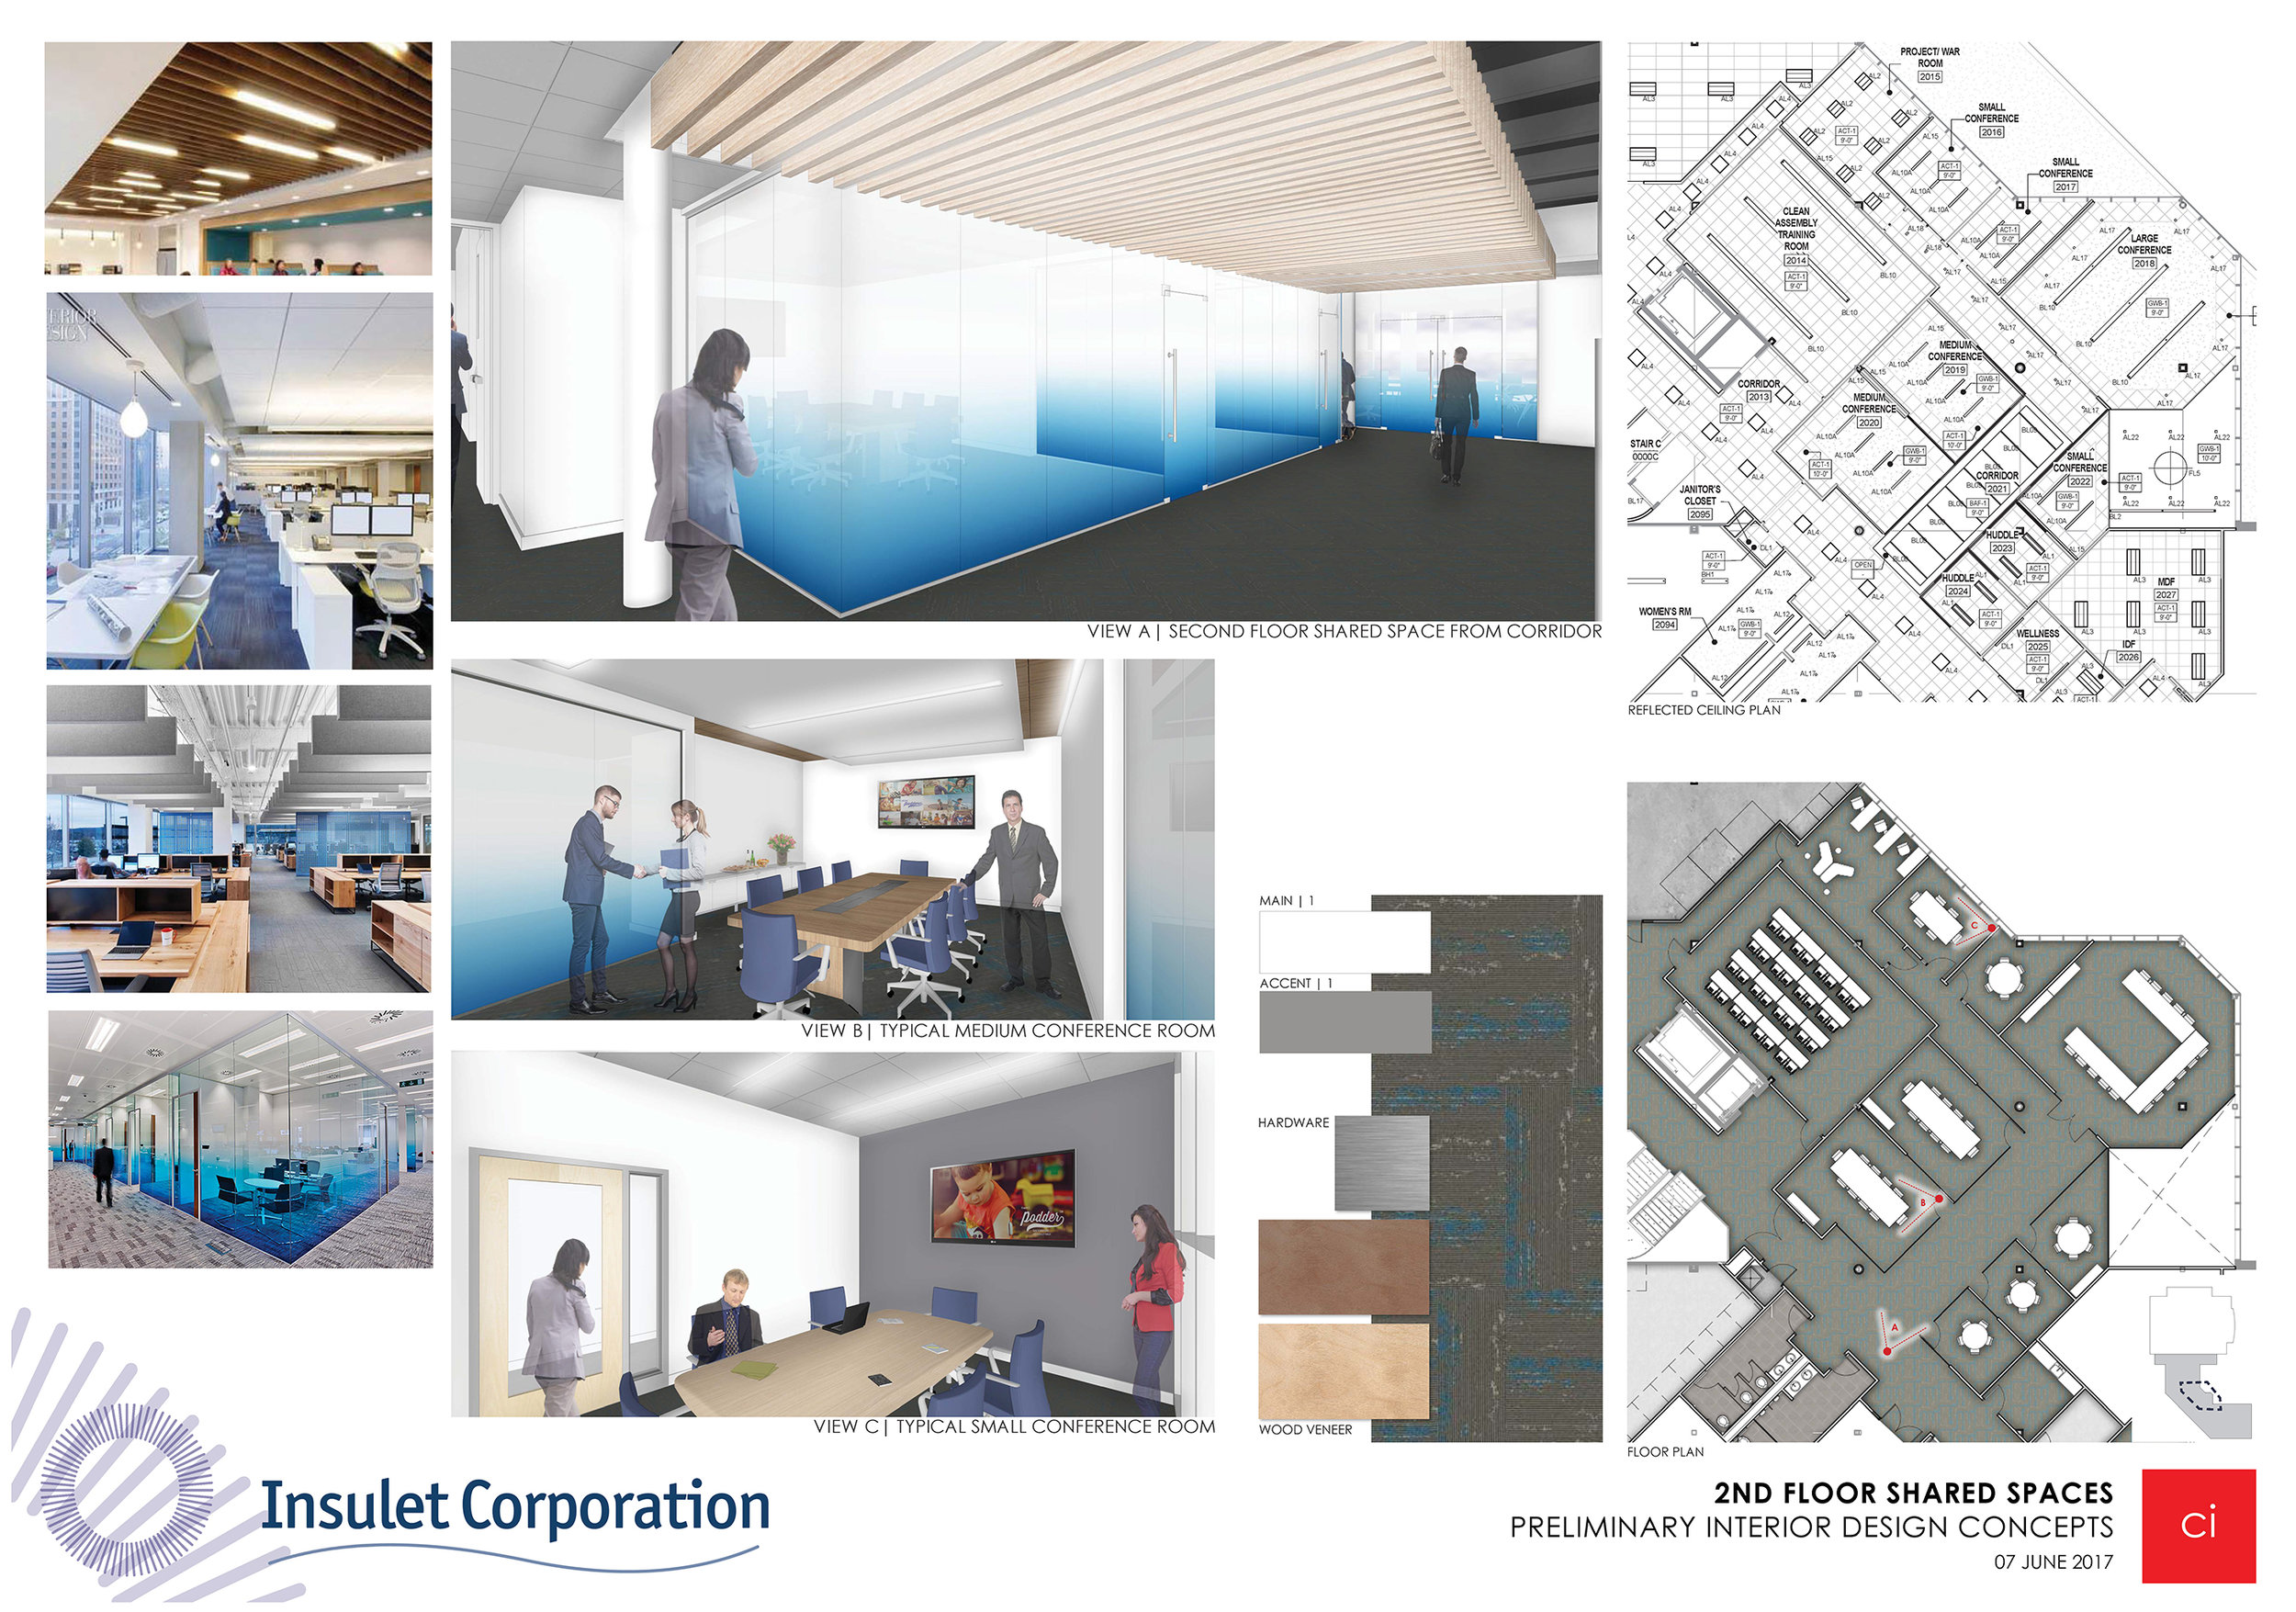 2017-06-07_Presentation Board_2nd Floor Shared Spaces lr.jpg